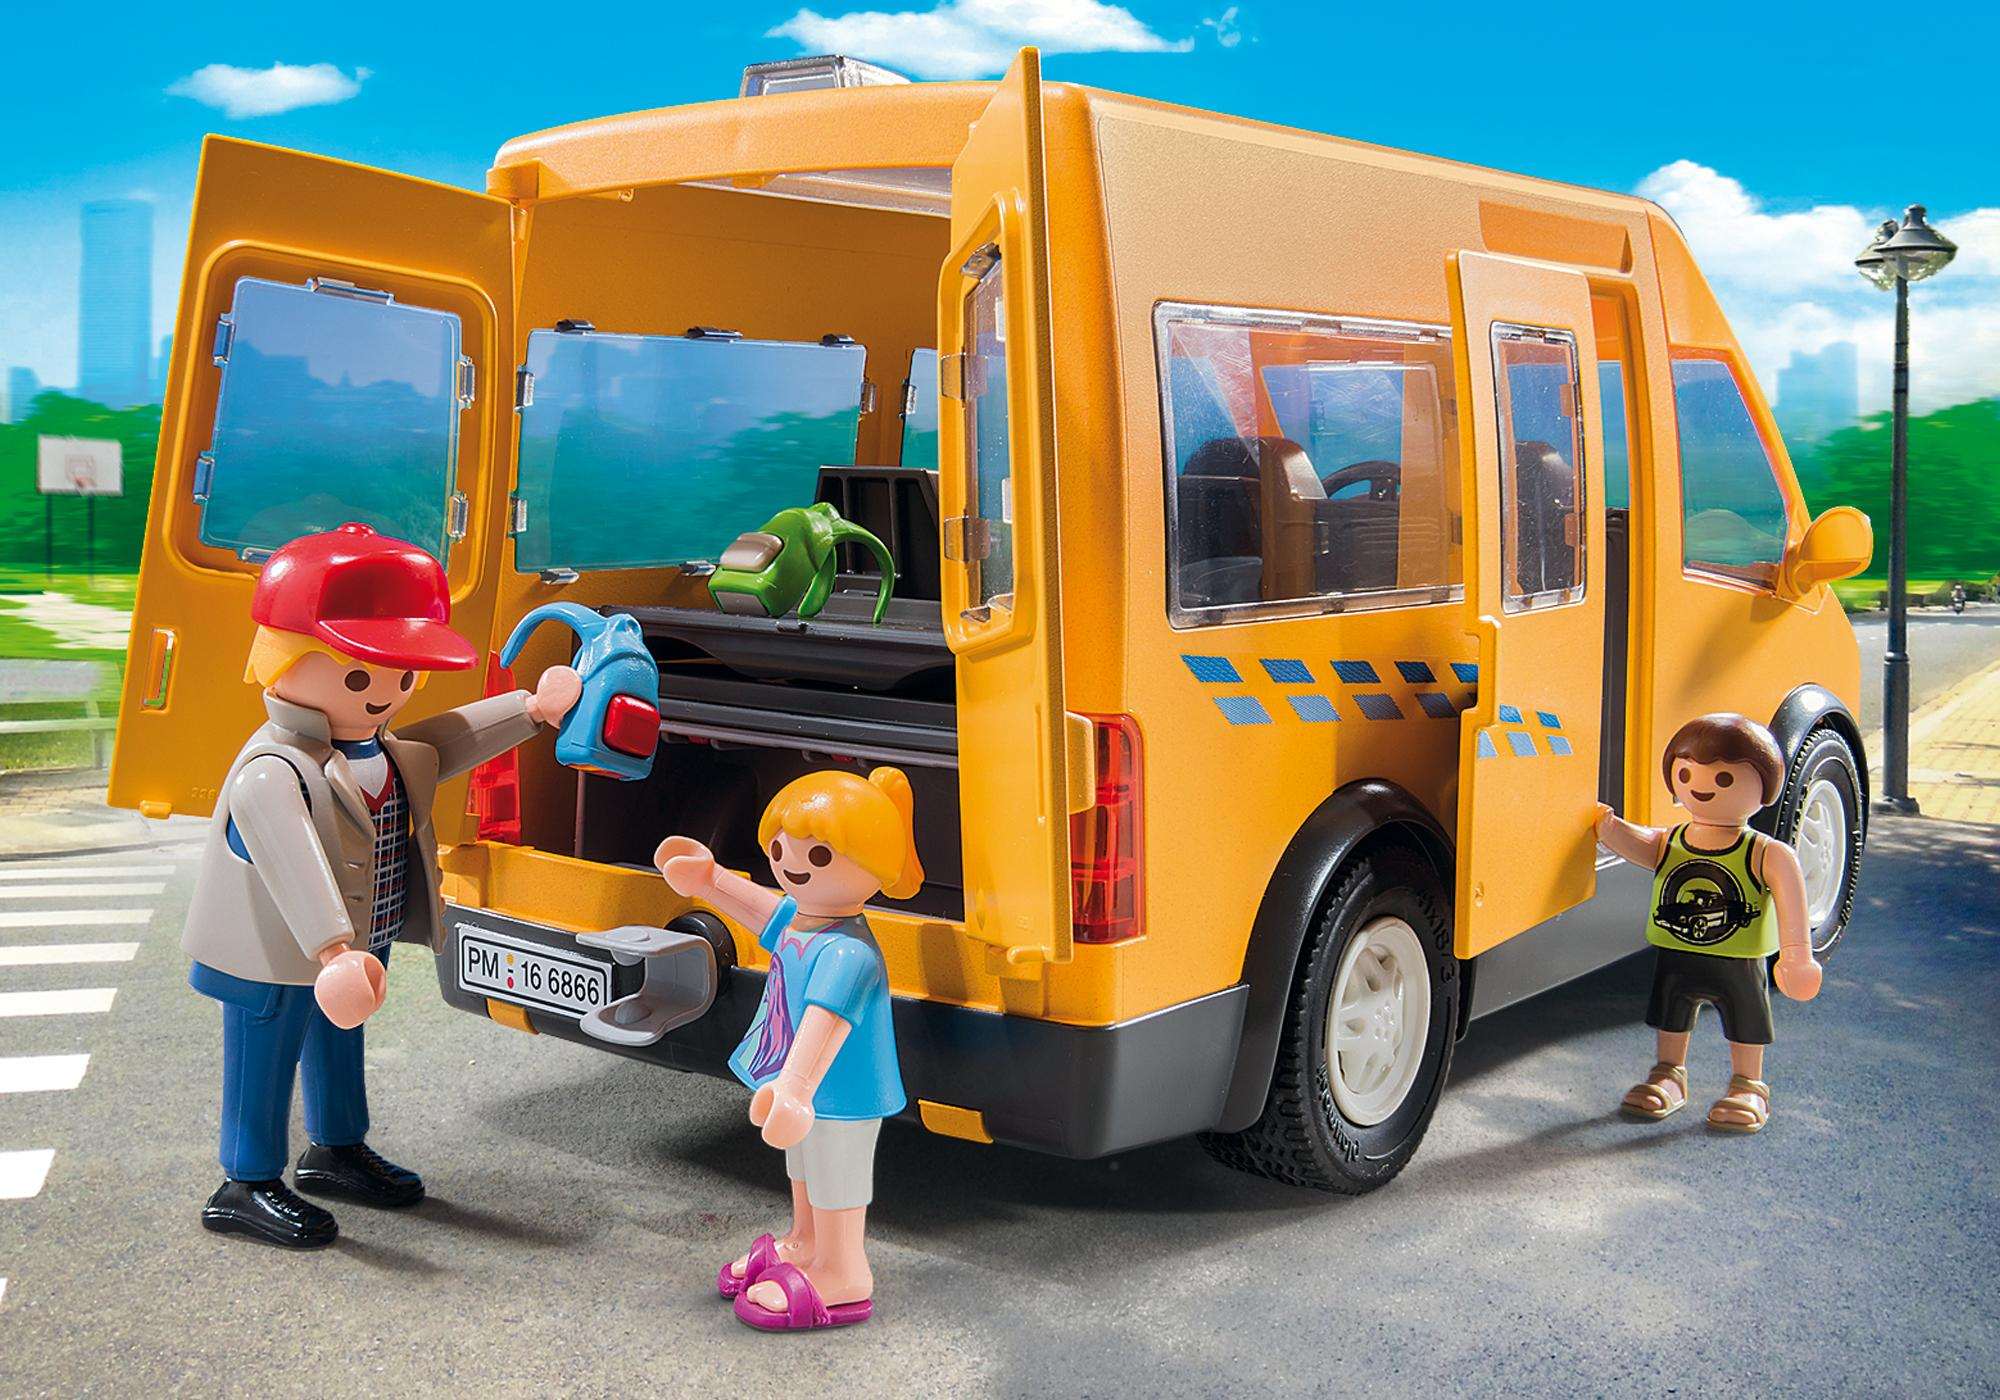 http://media.playmobil.com/i/playmobil/6866_product_extra1